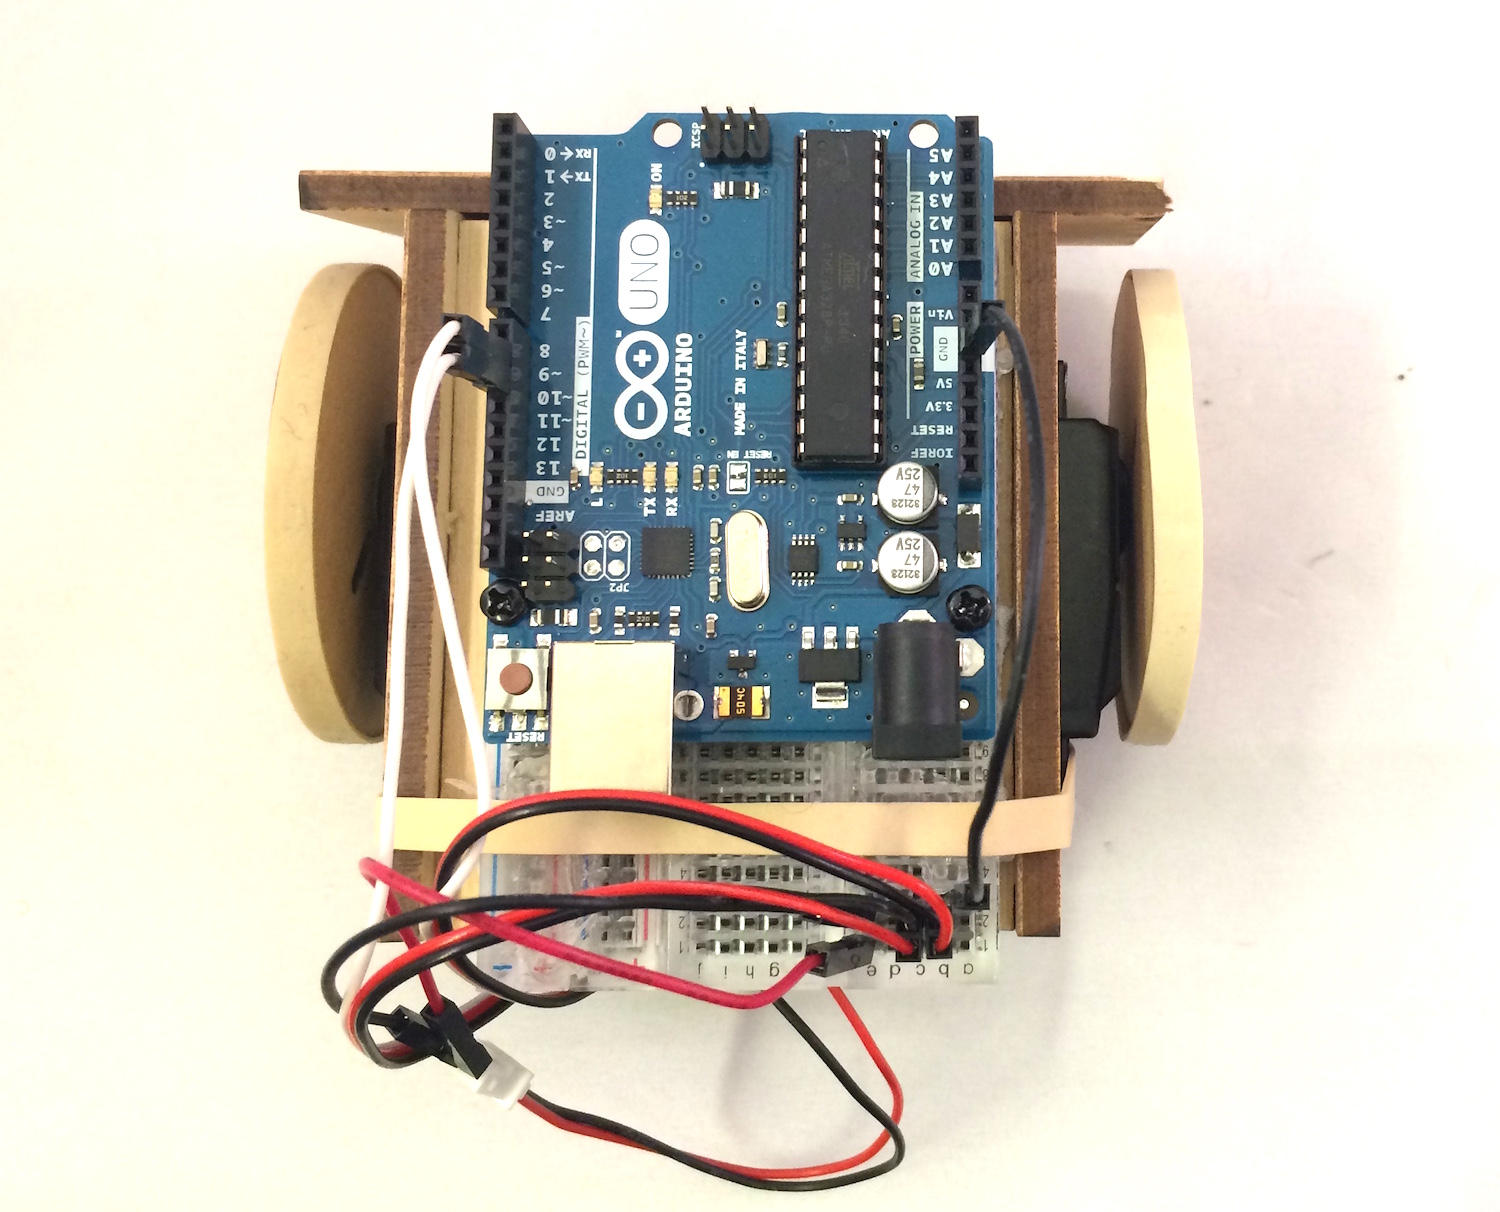 Arduino Uno SumoBot Assembled